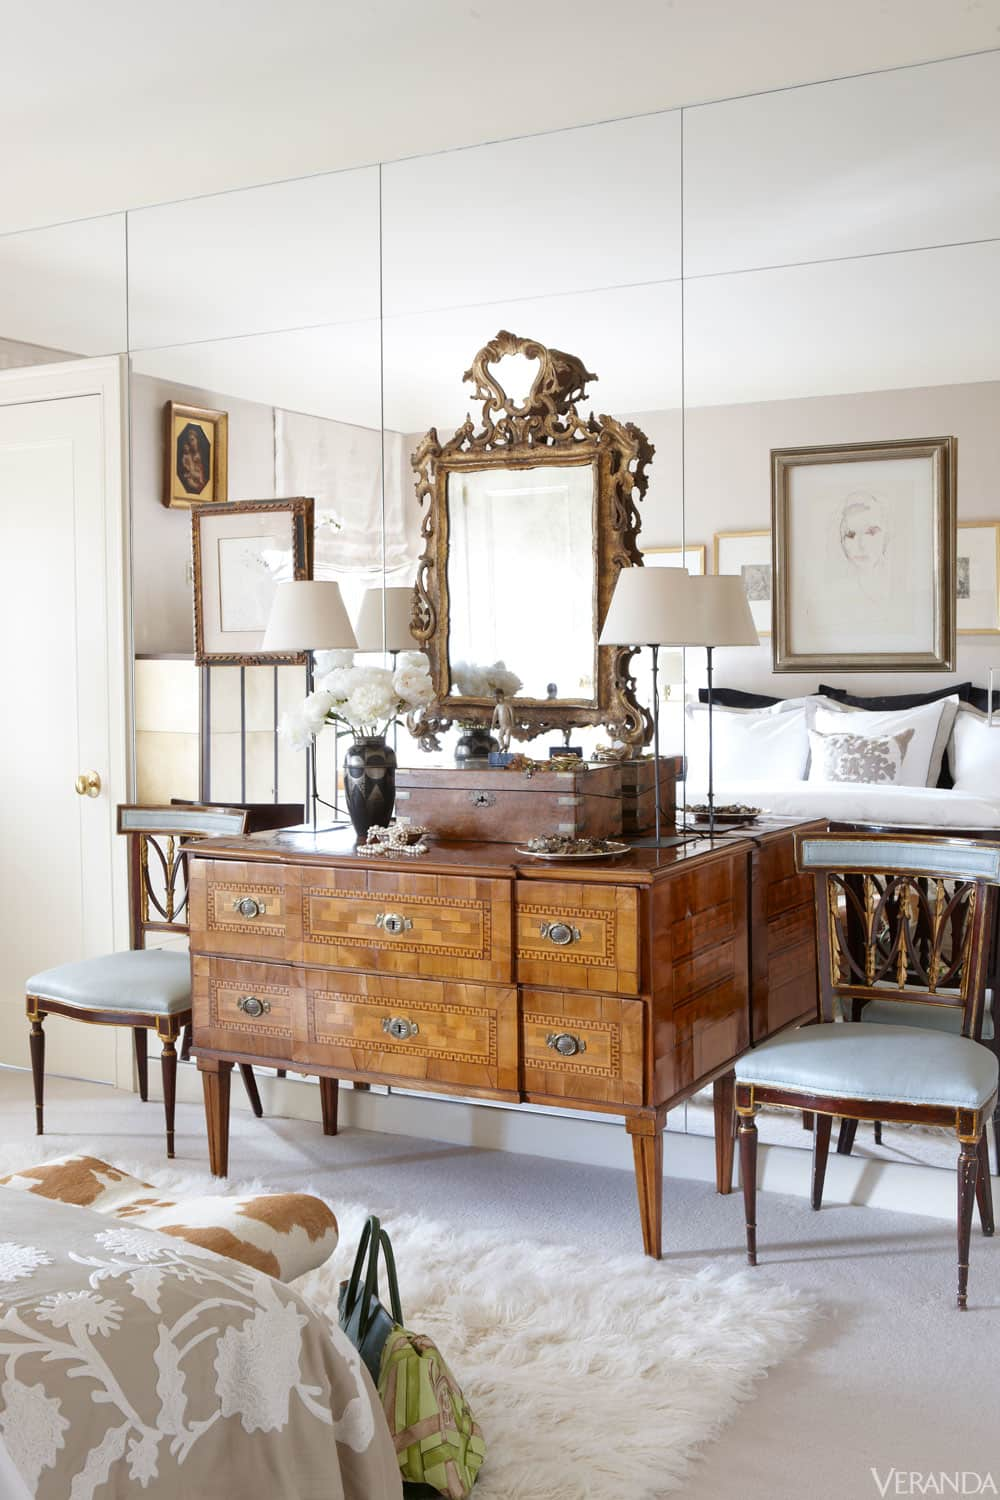 Plagued With Dated Mirrored Walls 5 Design Ideas To Make